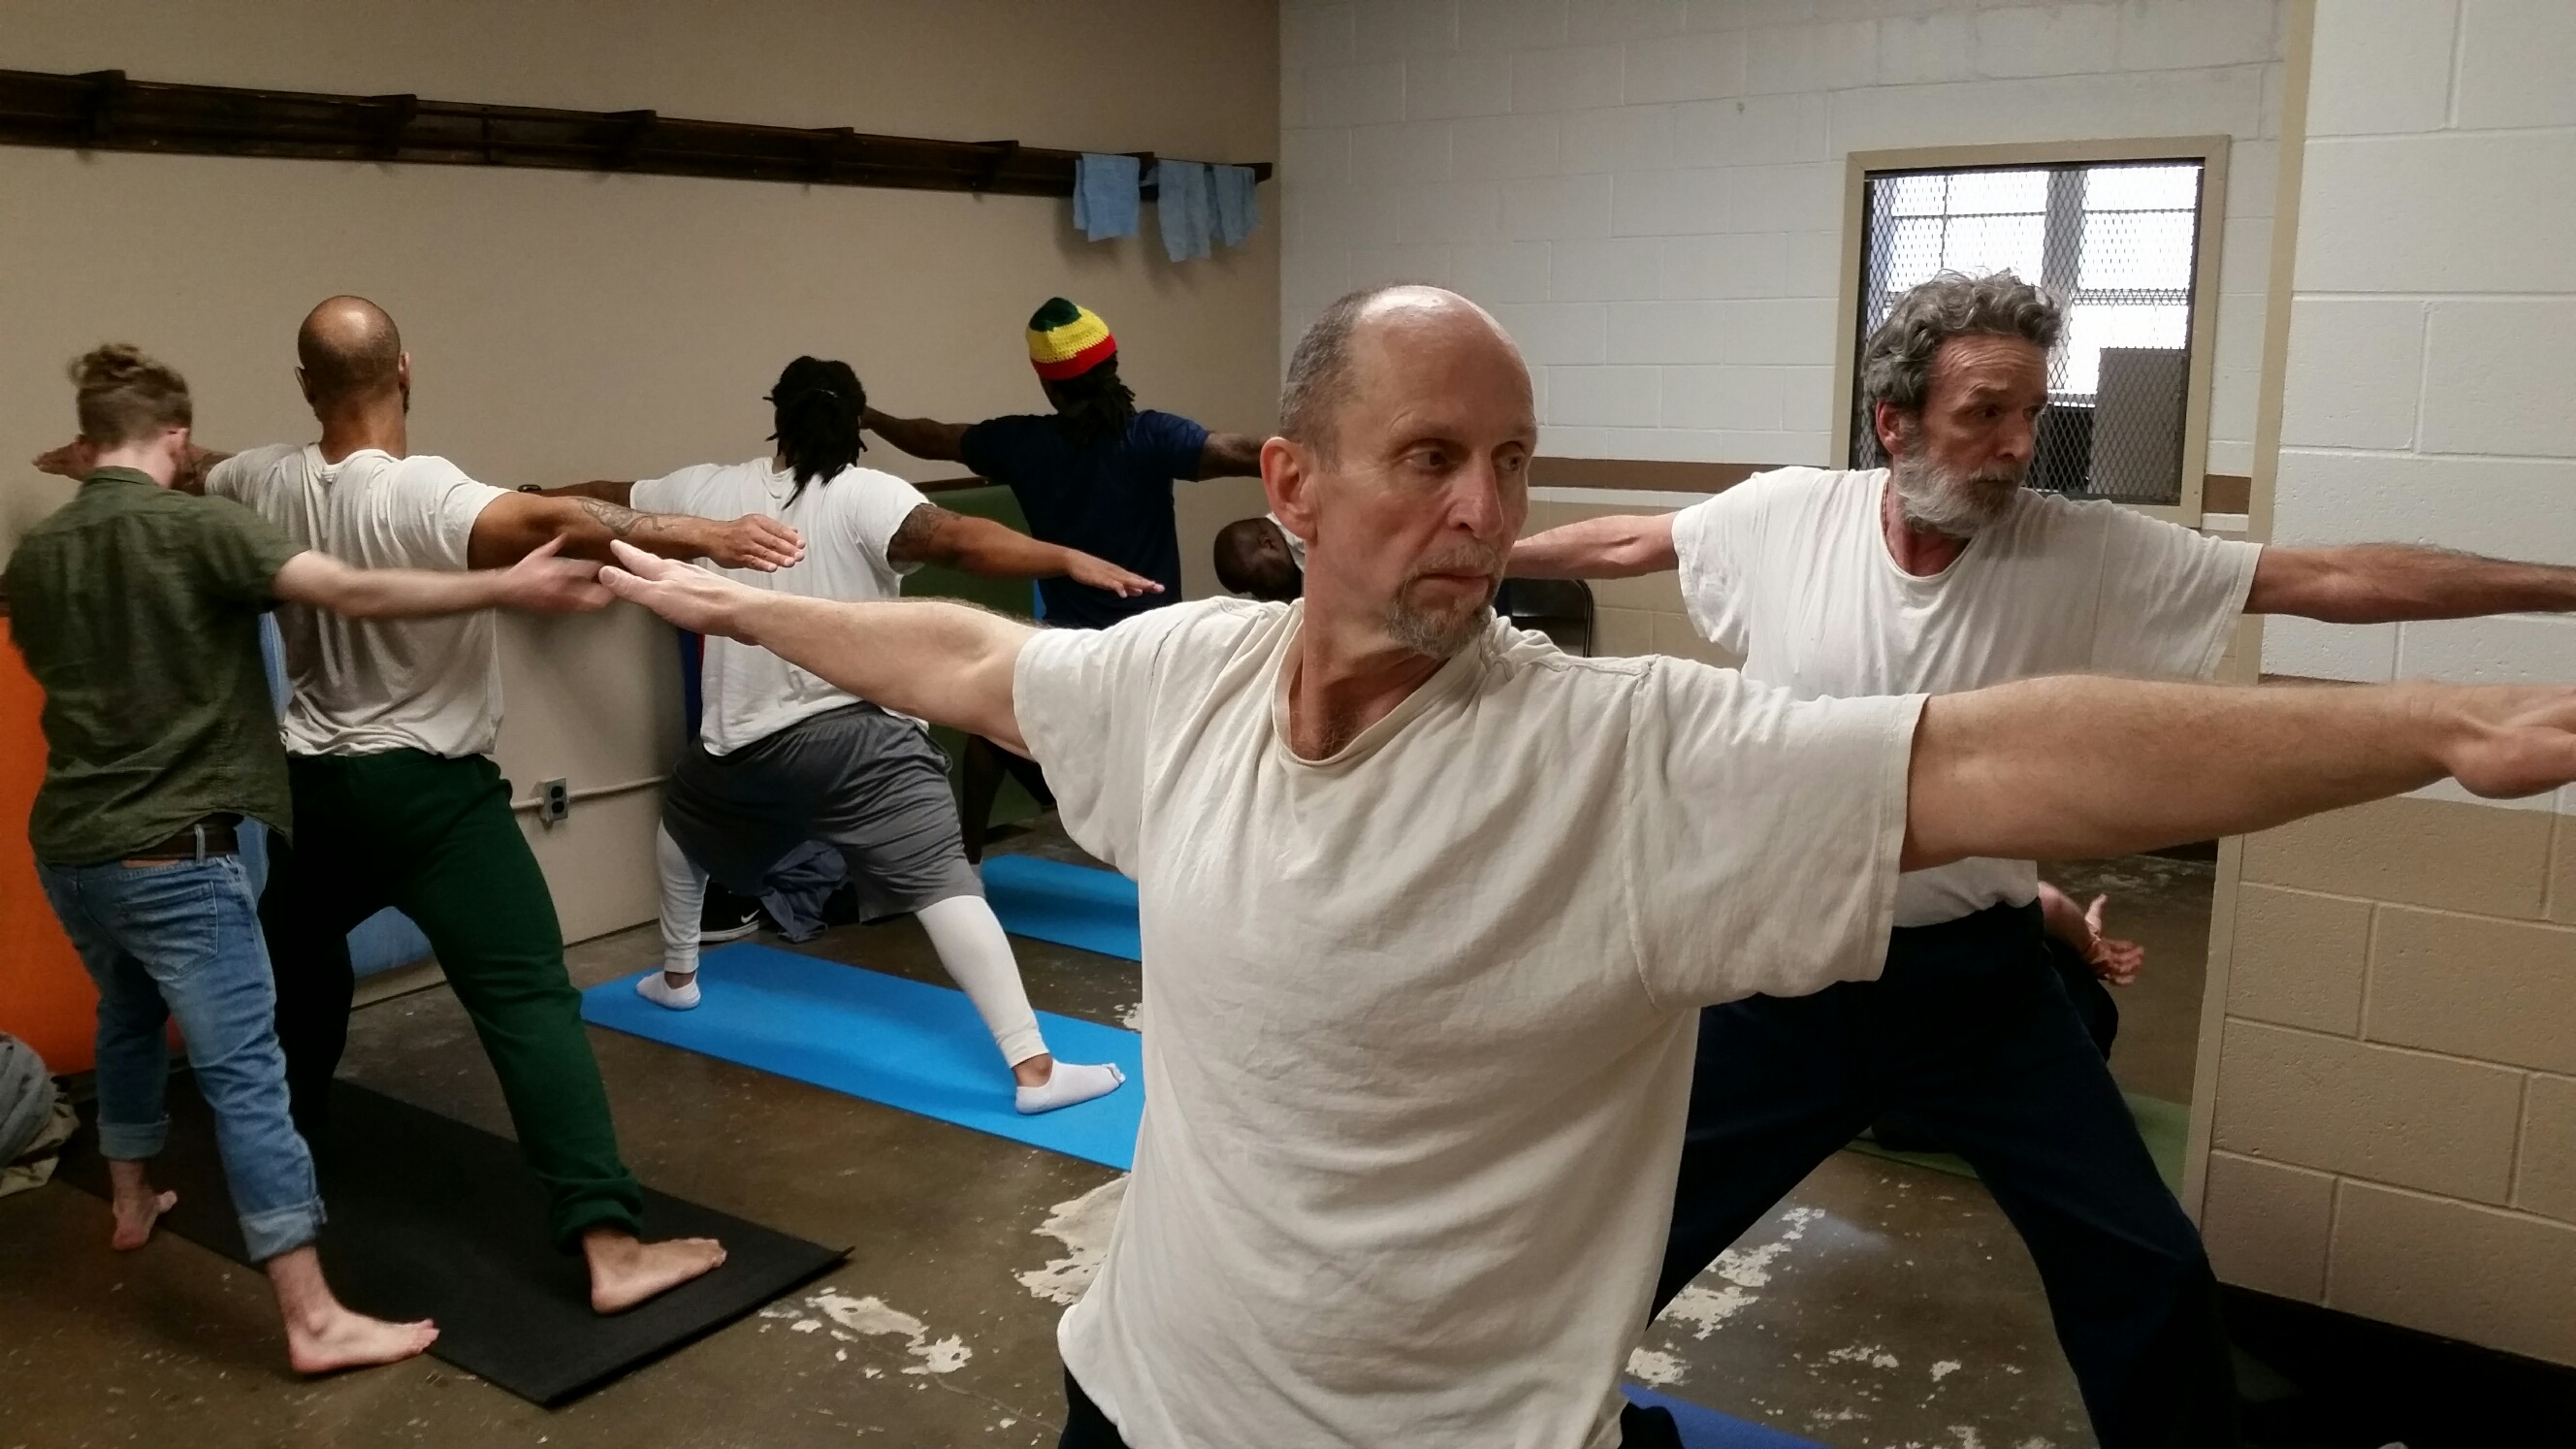 Yoga at Marion Correctional Institution